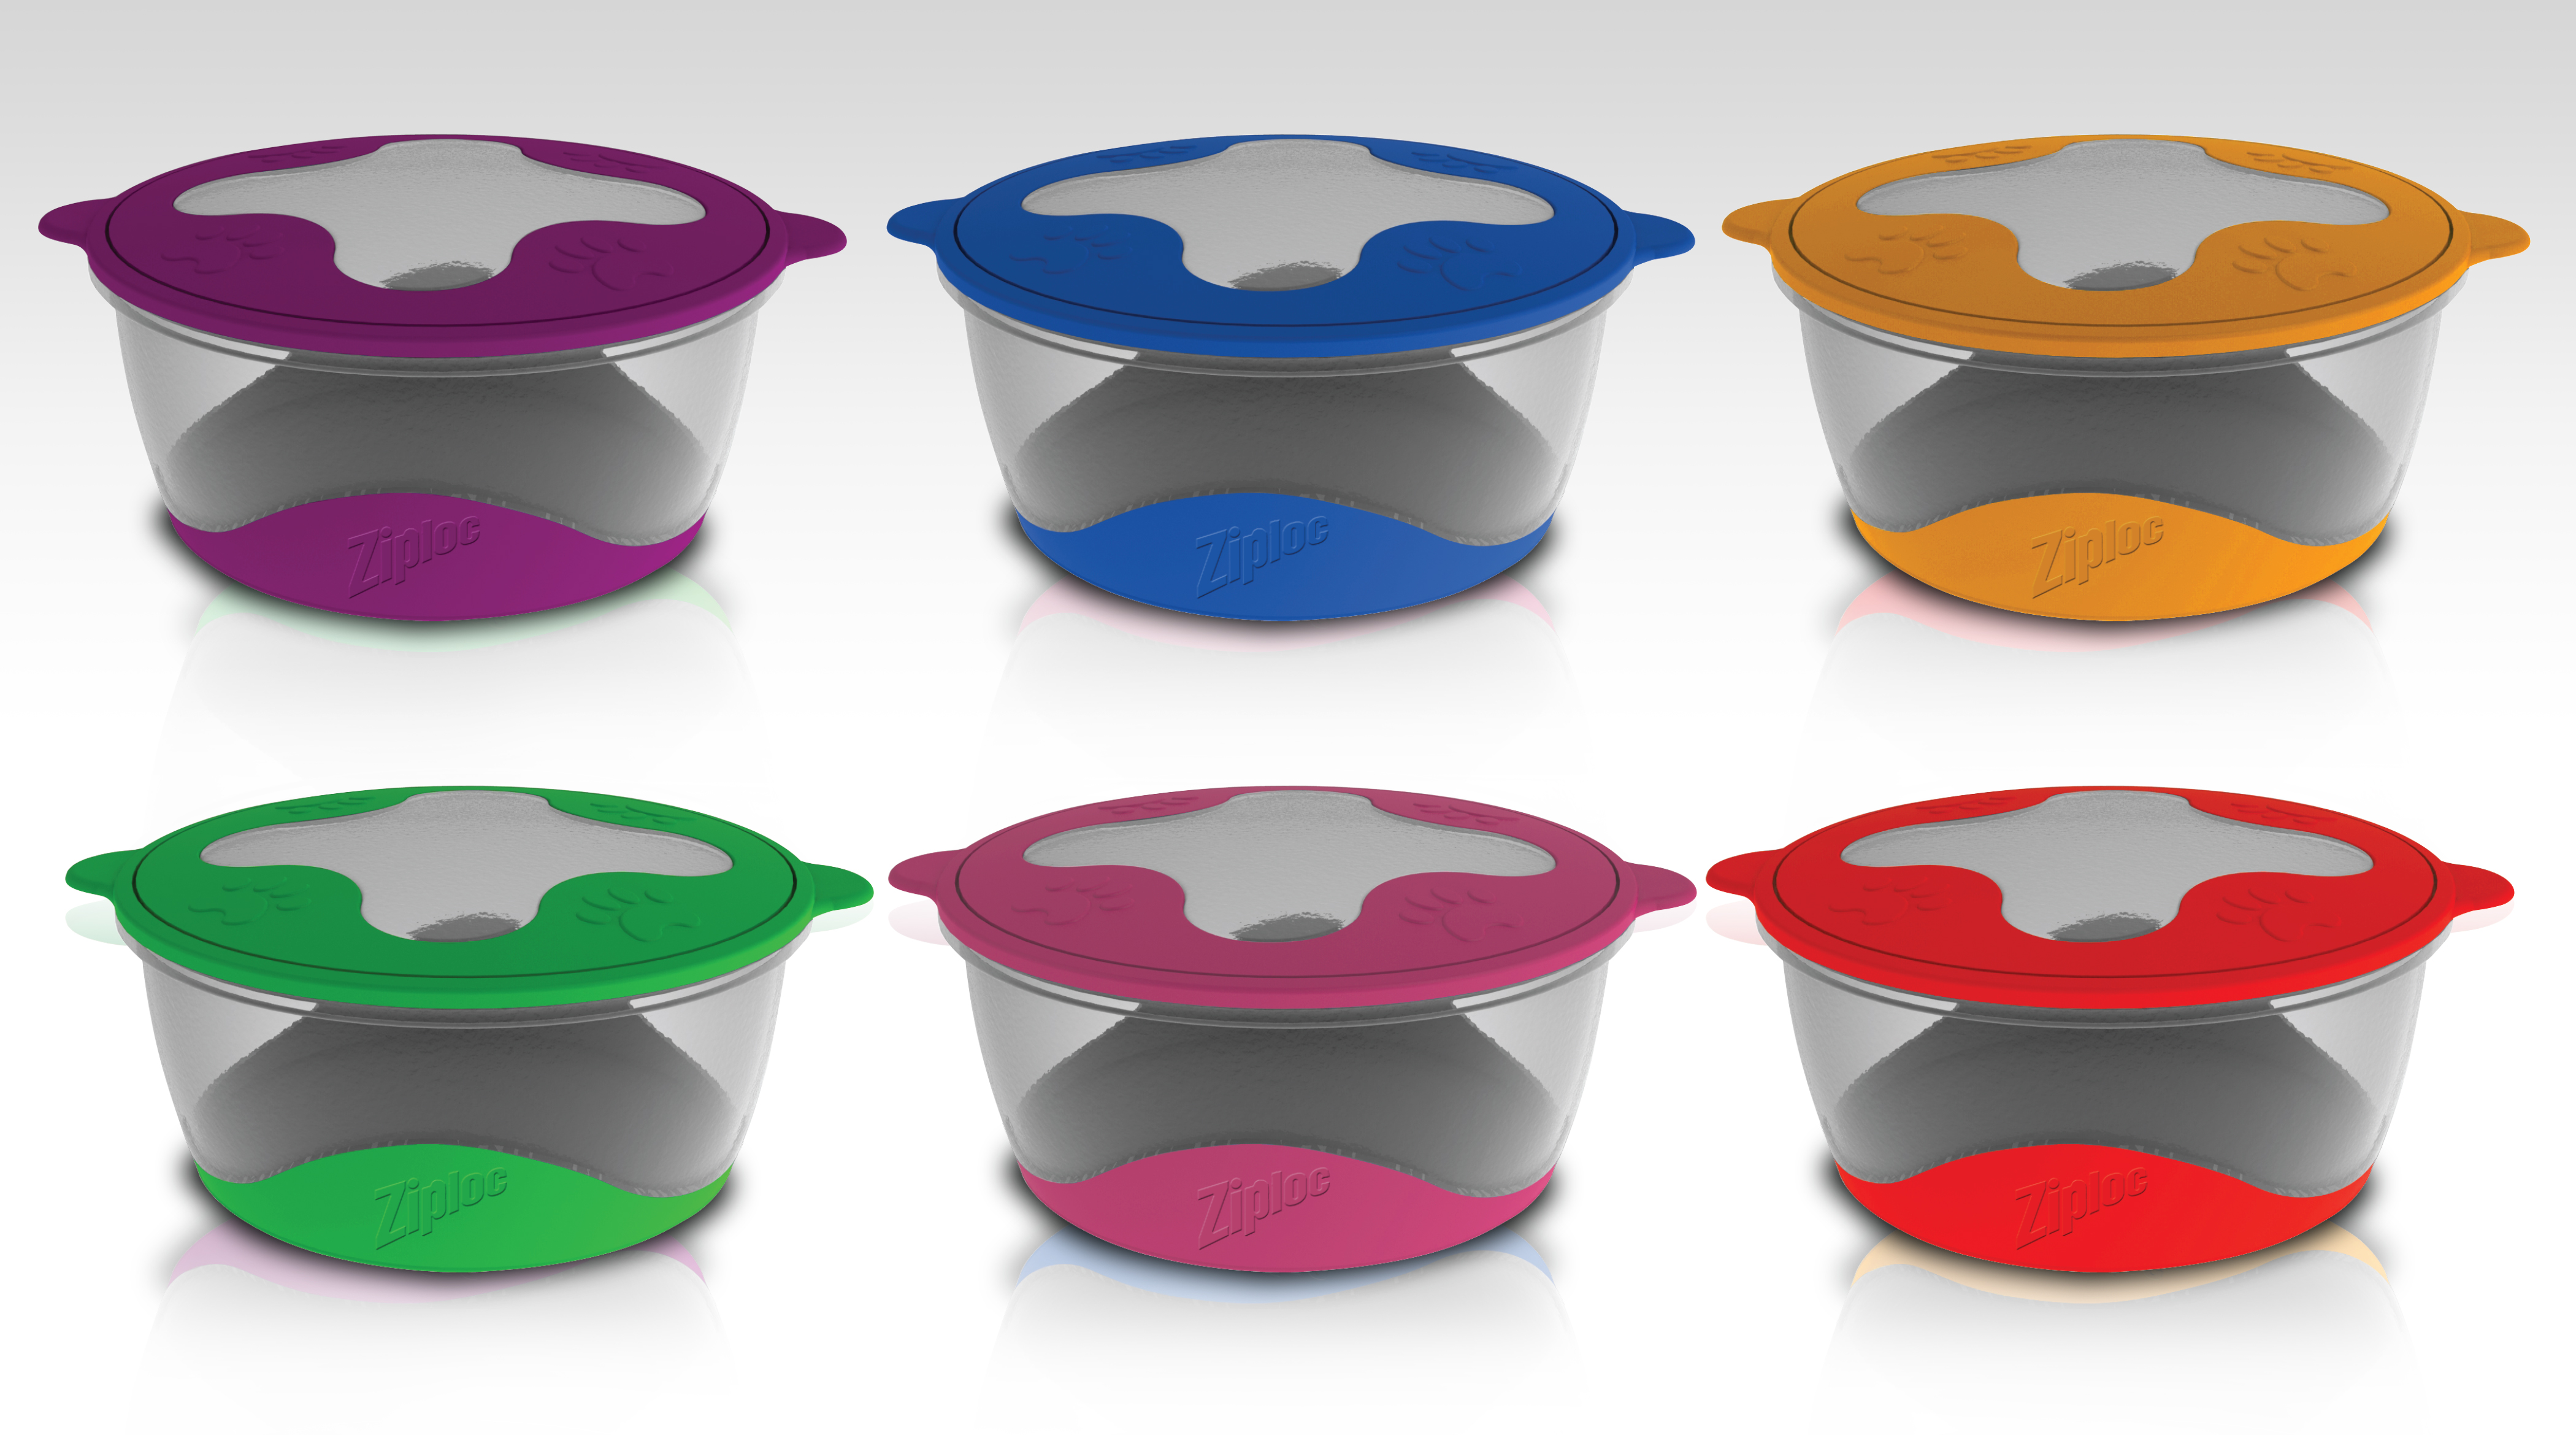 Industrial design of tupperware style products with product design precision